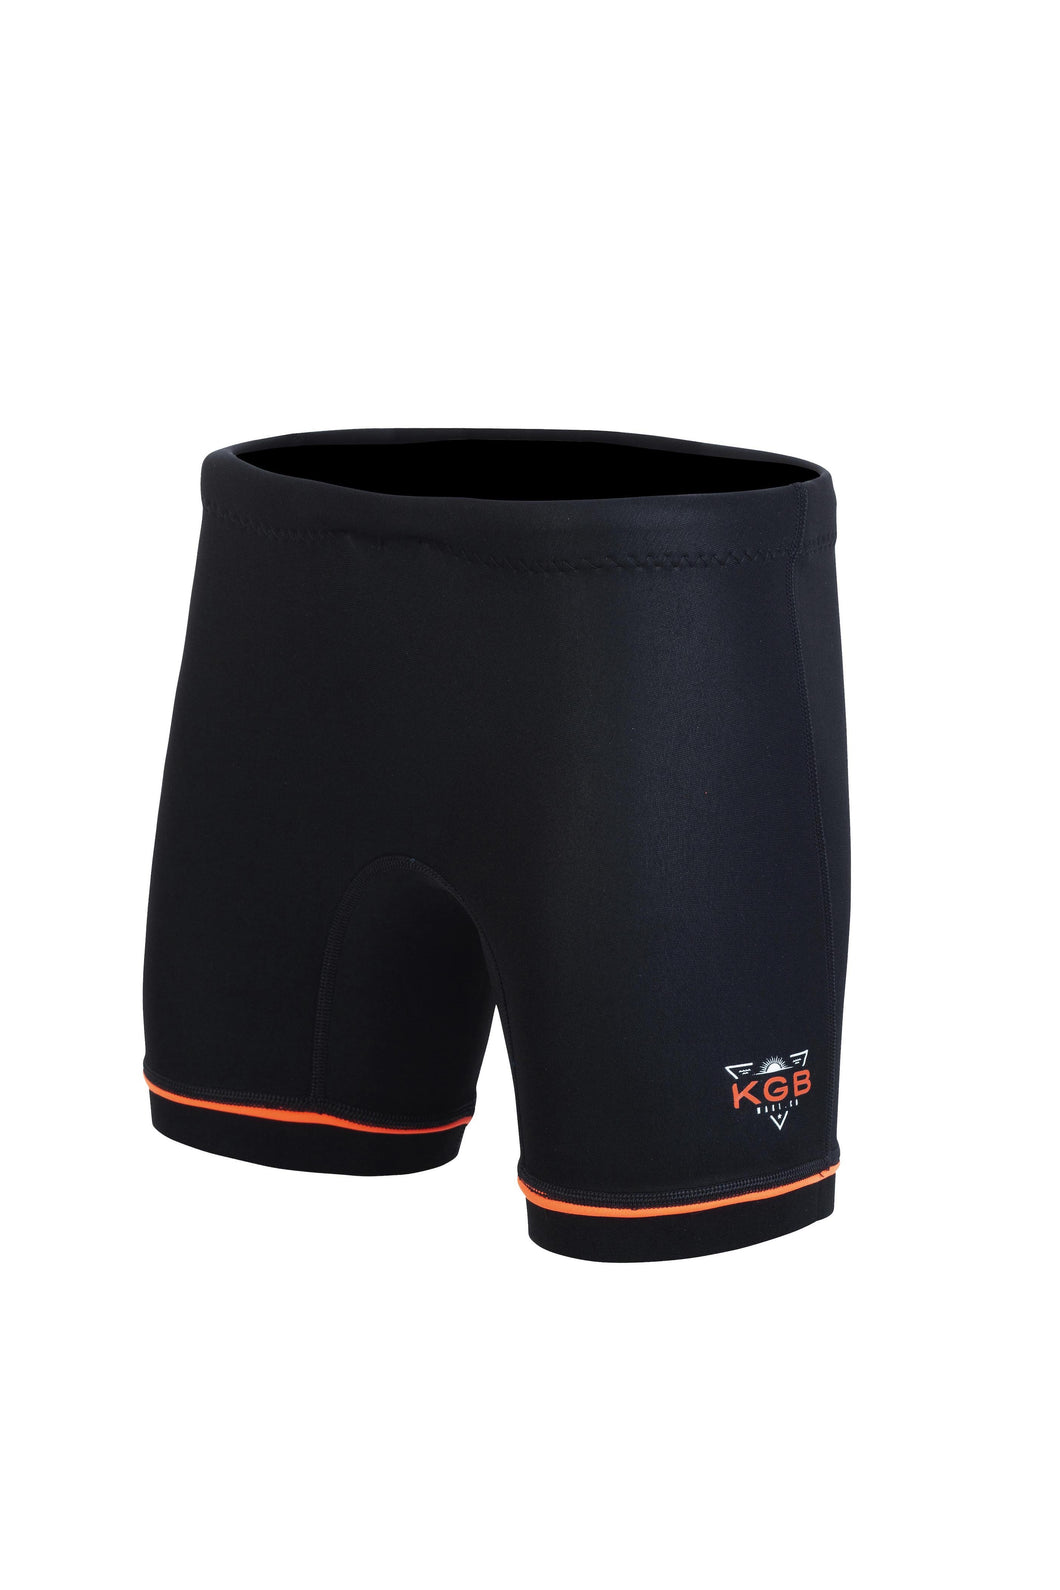 2021 KGB Junior Short